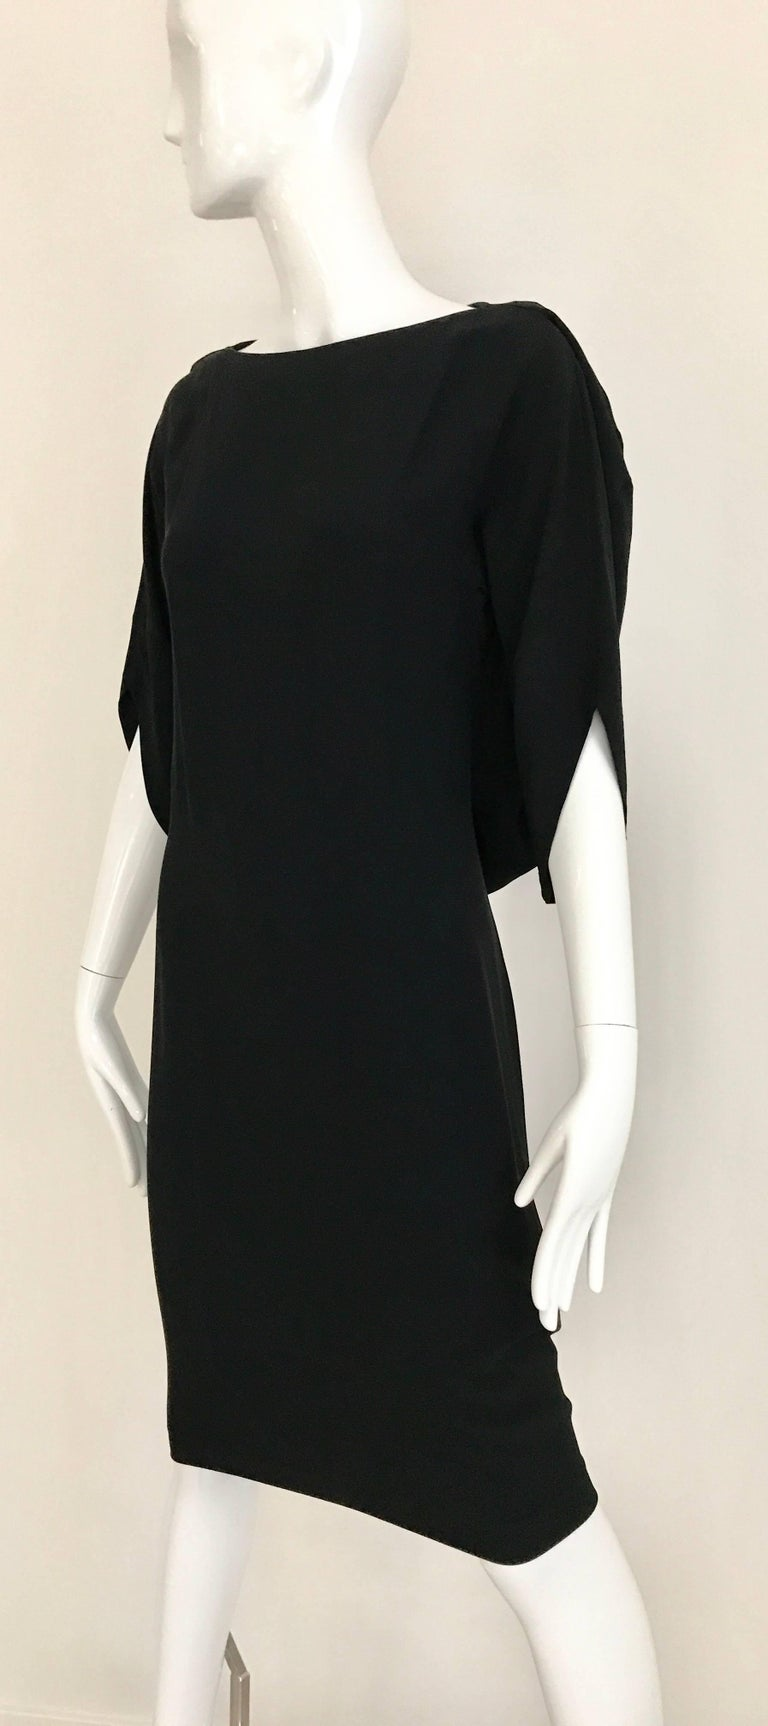 Vintage Margiela Black Rayon dress with interesting sleeves.  Marked size 40 Bust: 34 inch / Waist 26 inch - 32 inch / hip 36 inch / Dress Length: 43 inch